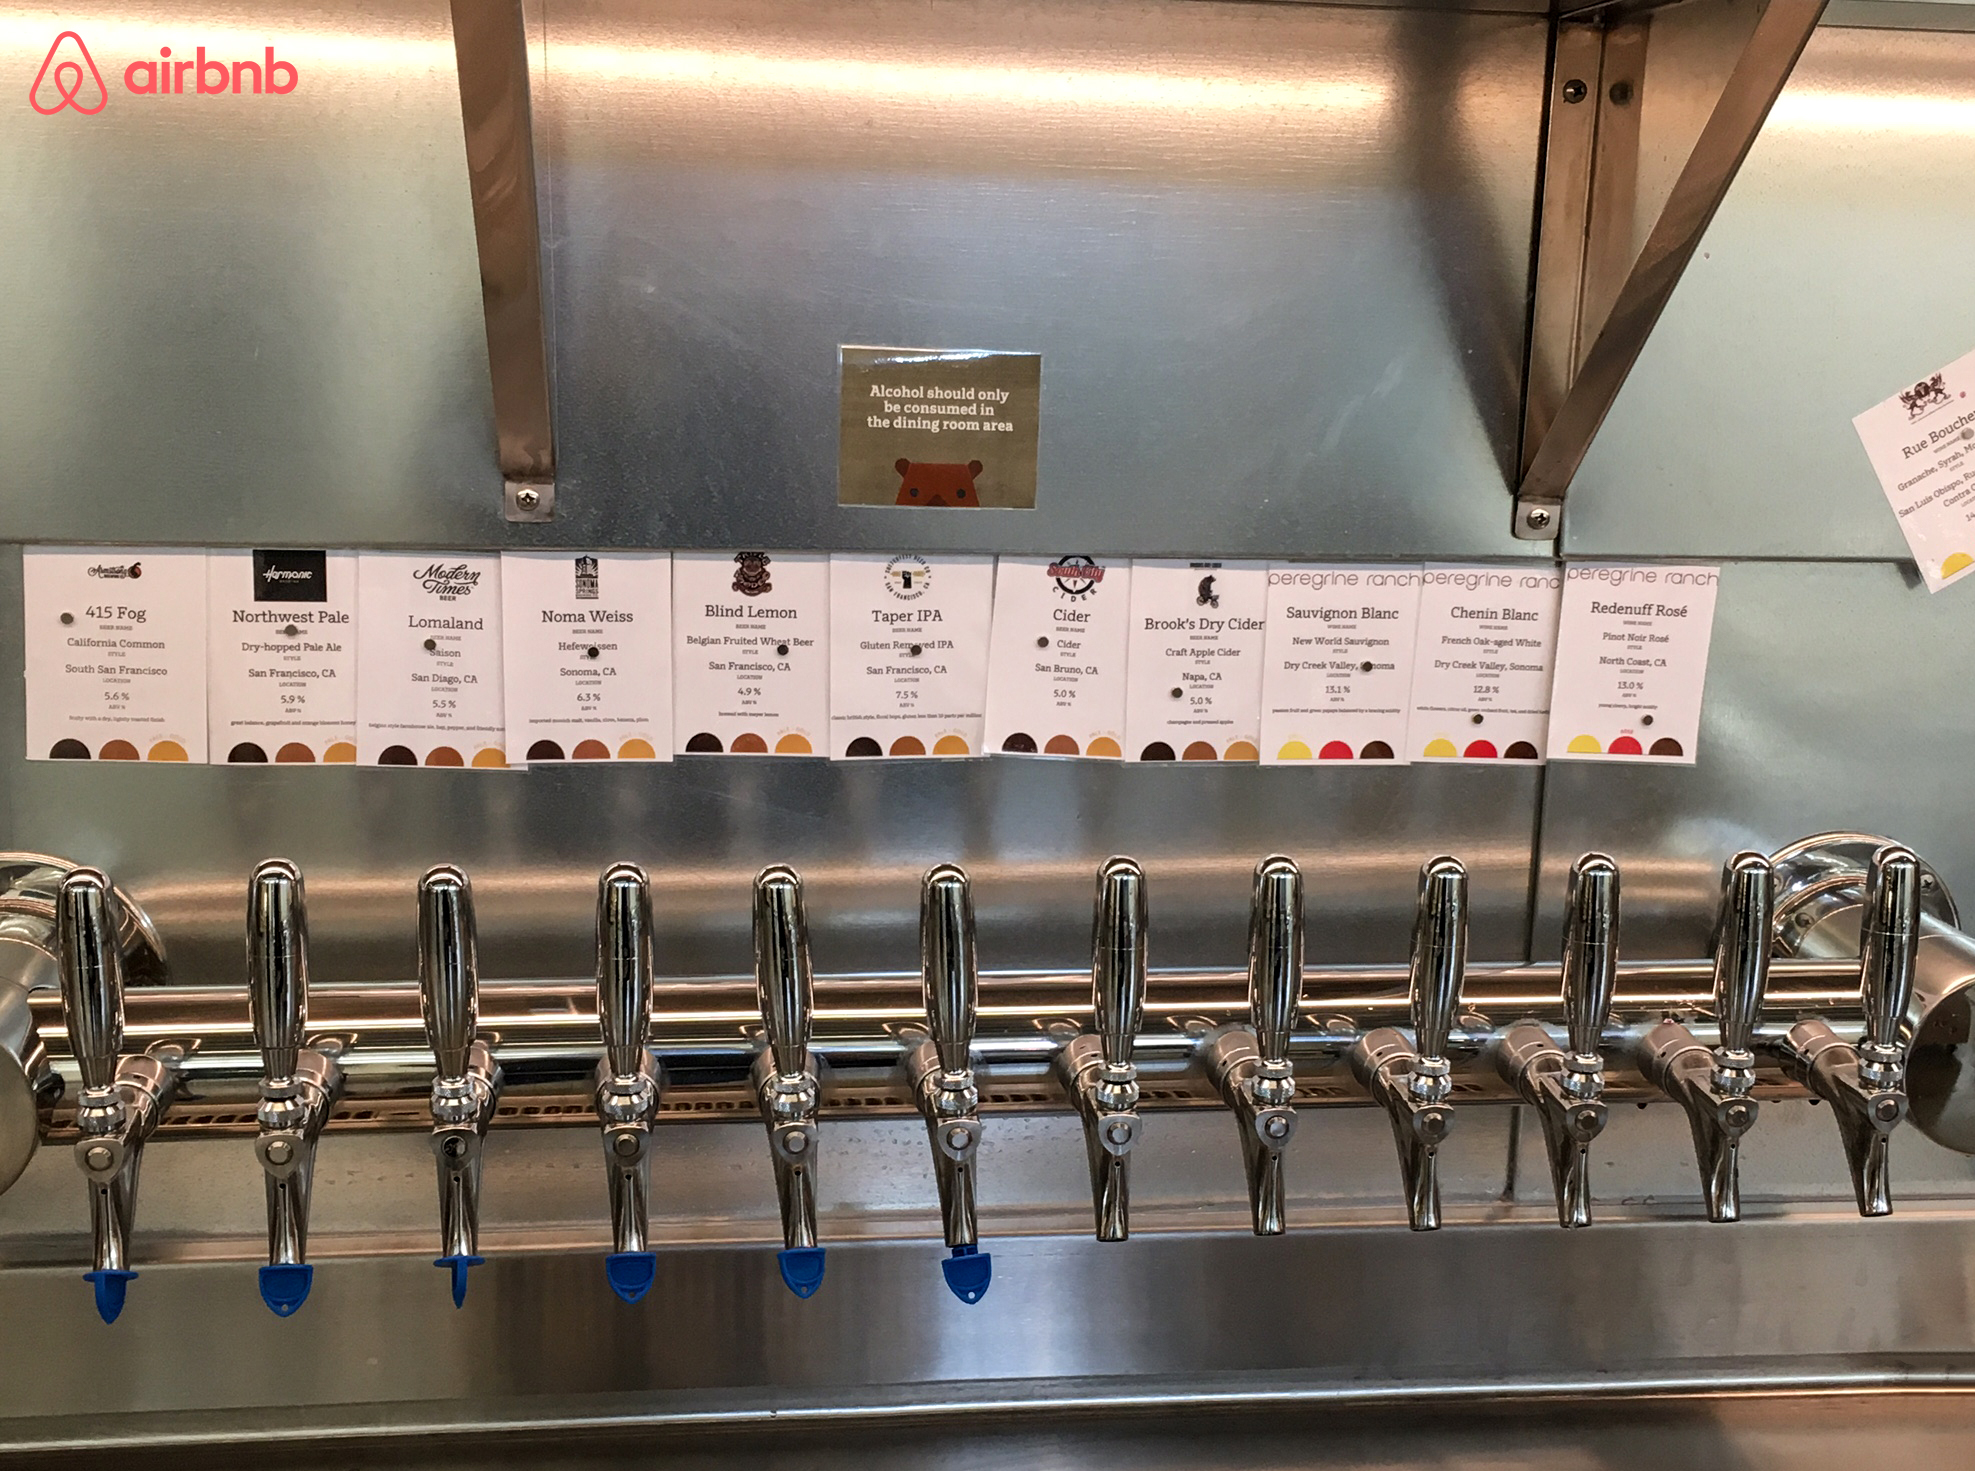 Airbnb's Beverages on Tap